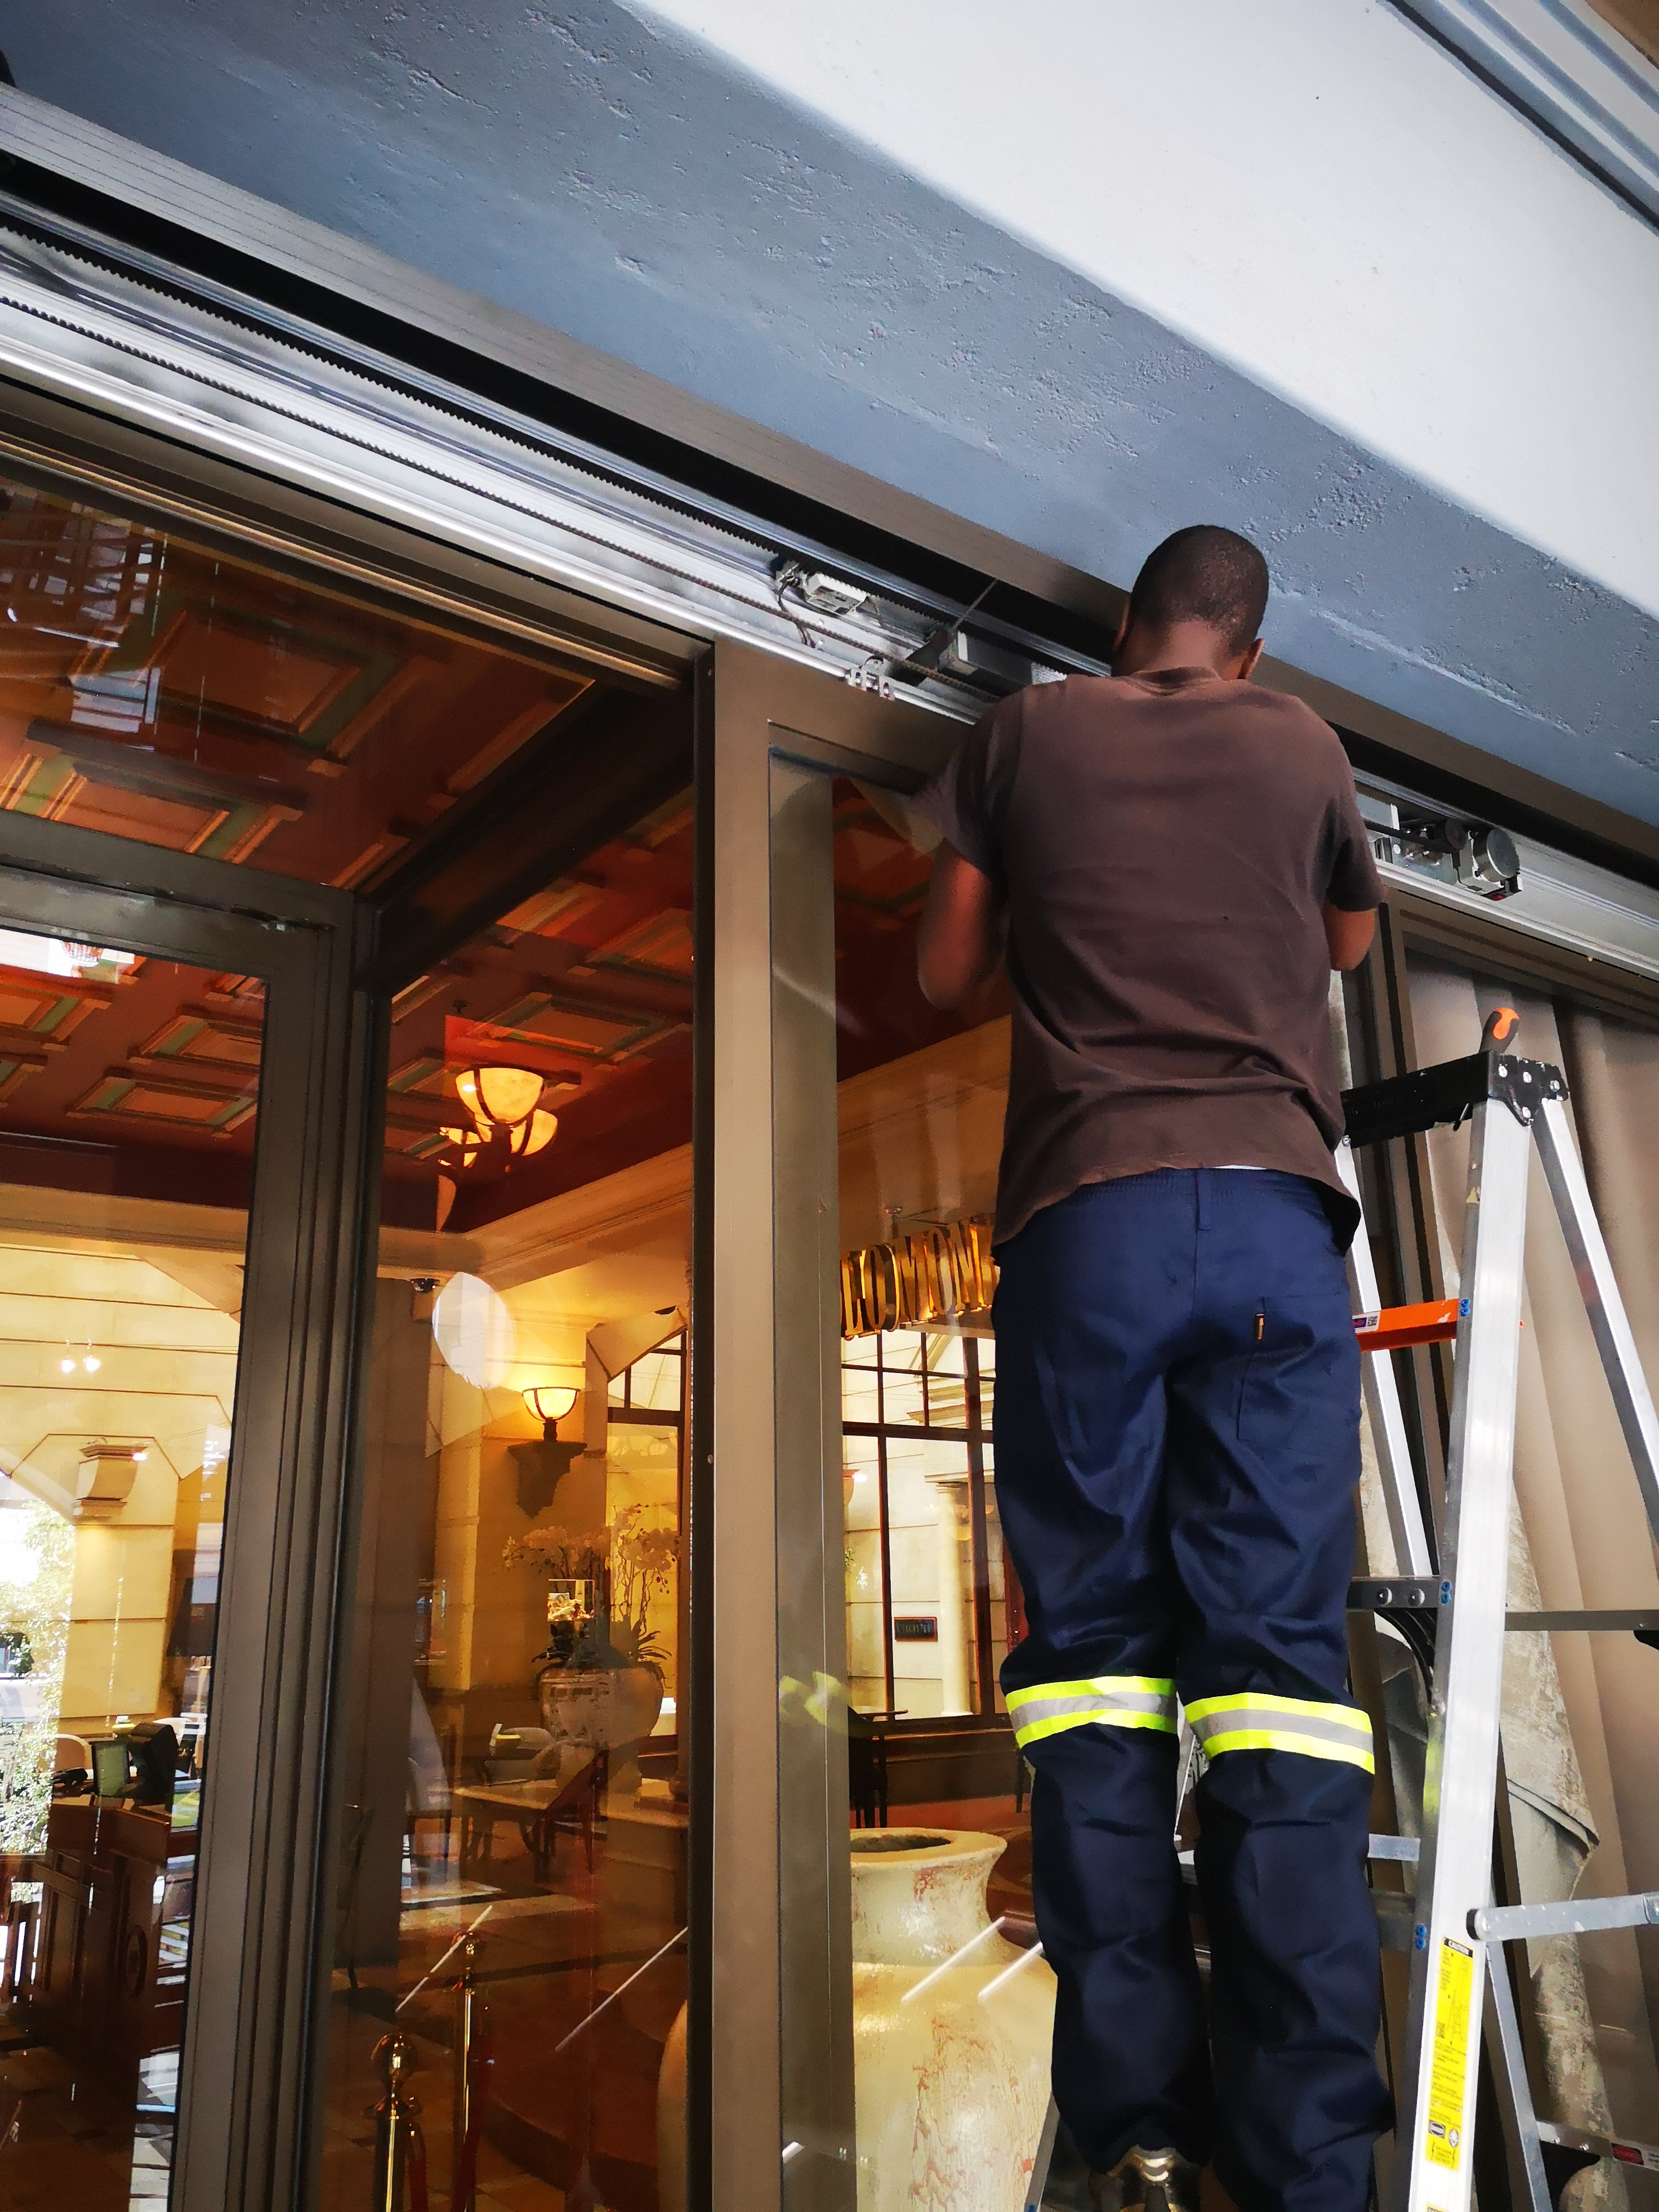 Sliding Door Repairs Call Now For Affordable Sliding